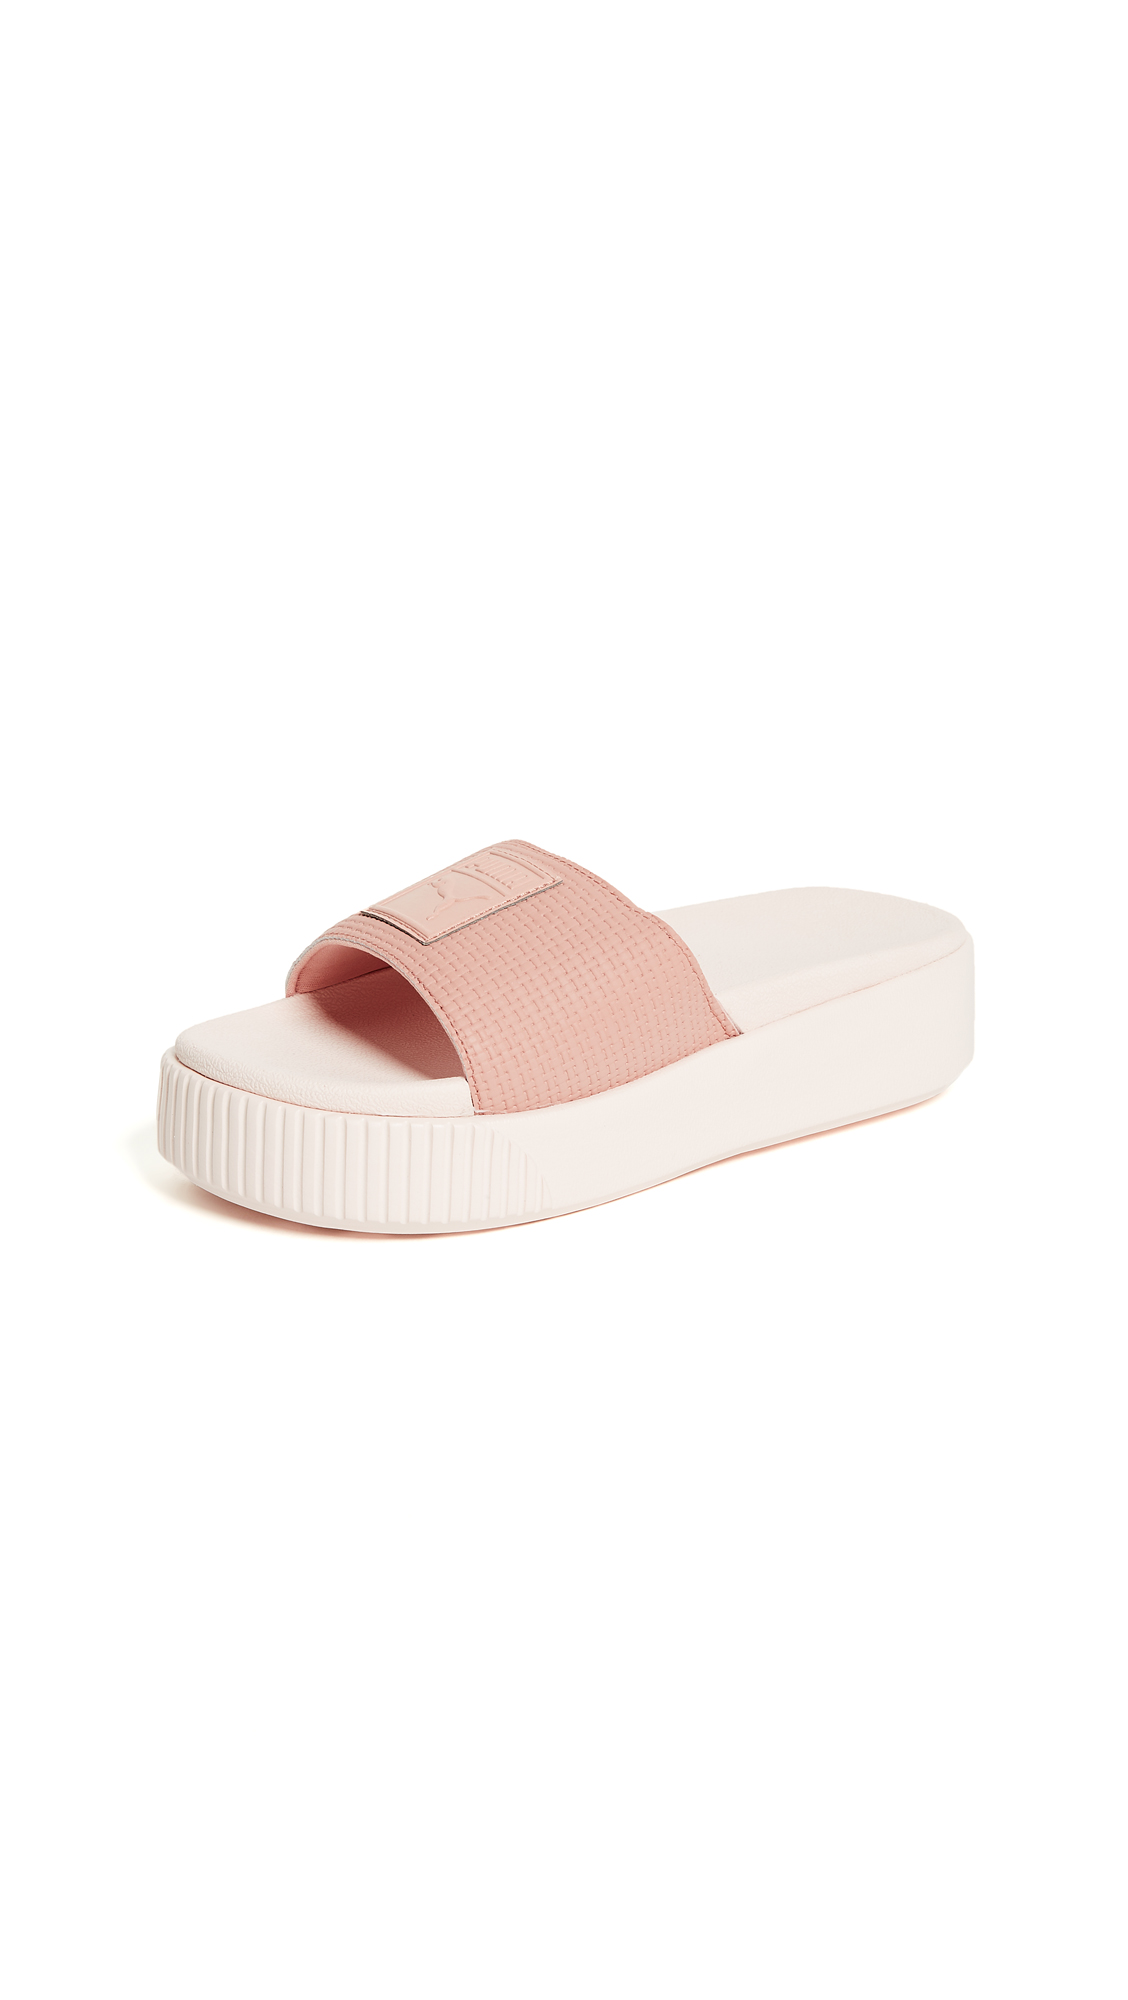 WOMEN'S PLATFORM POOL SLIDE SANDALS